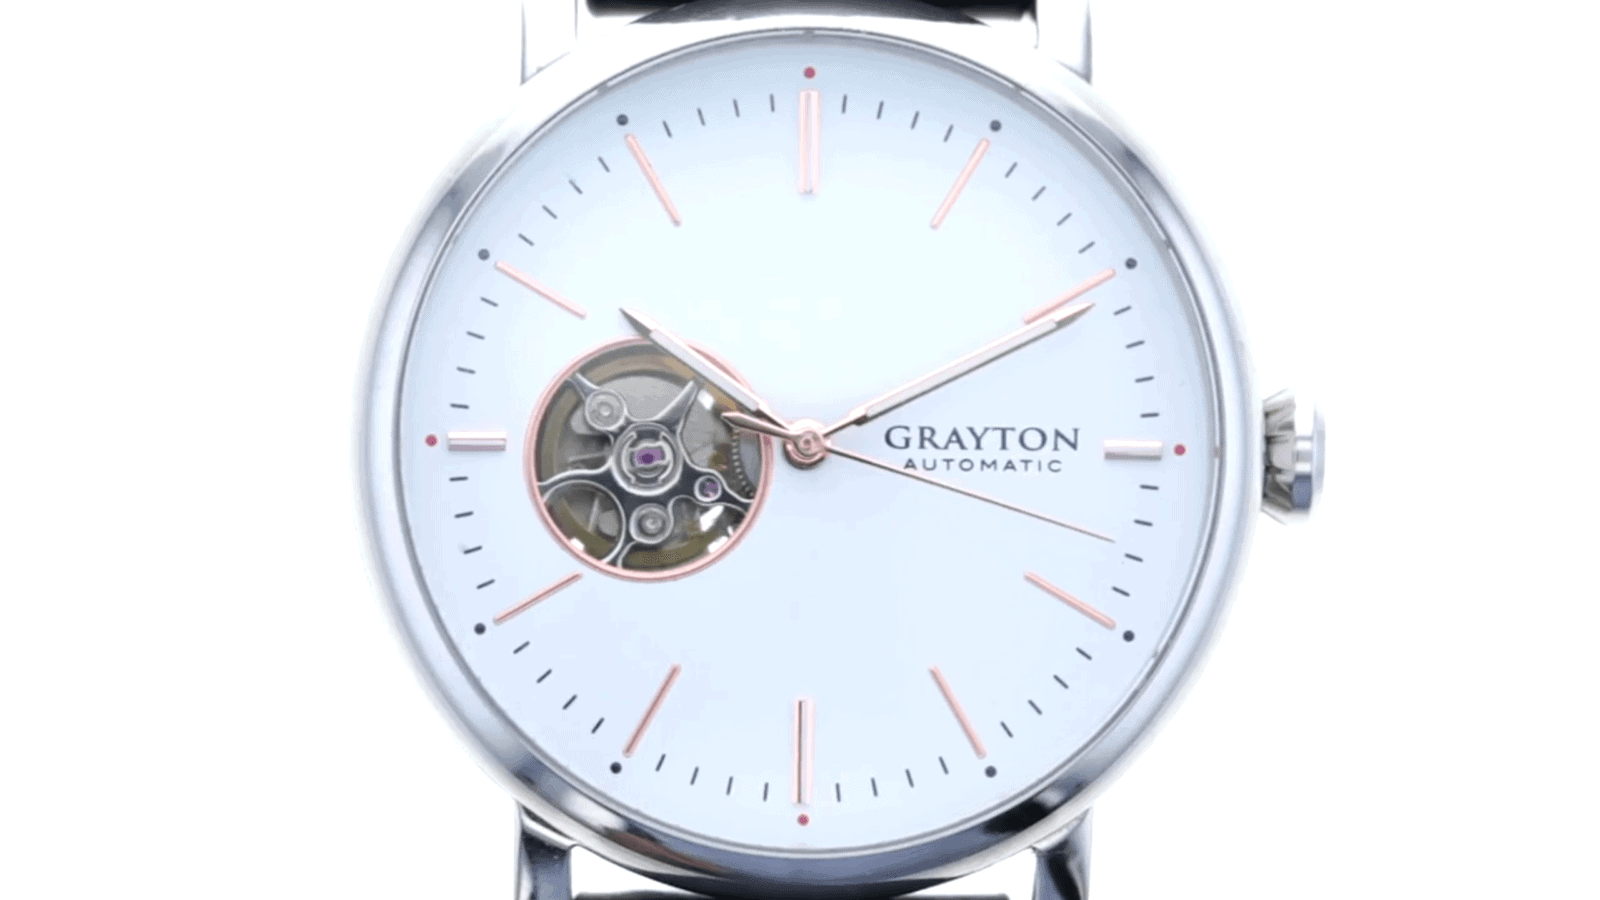 Grayton Origin Smartwatch Puts Smart Features In The Band ...